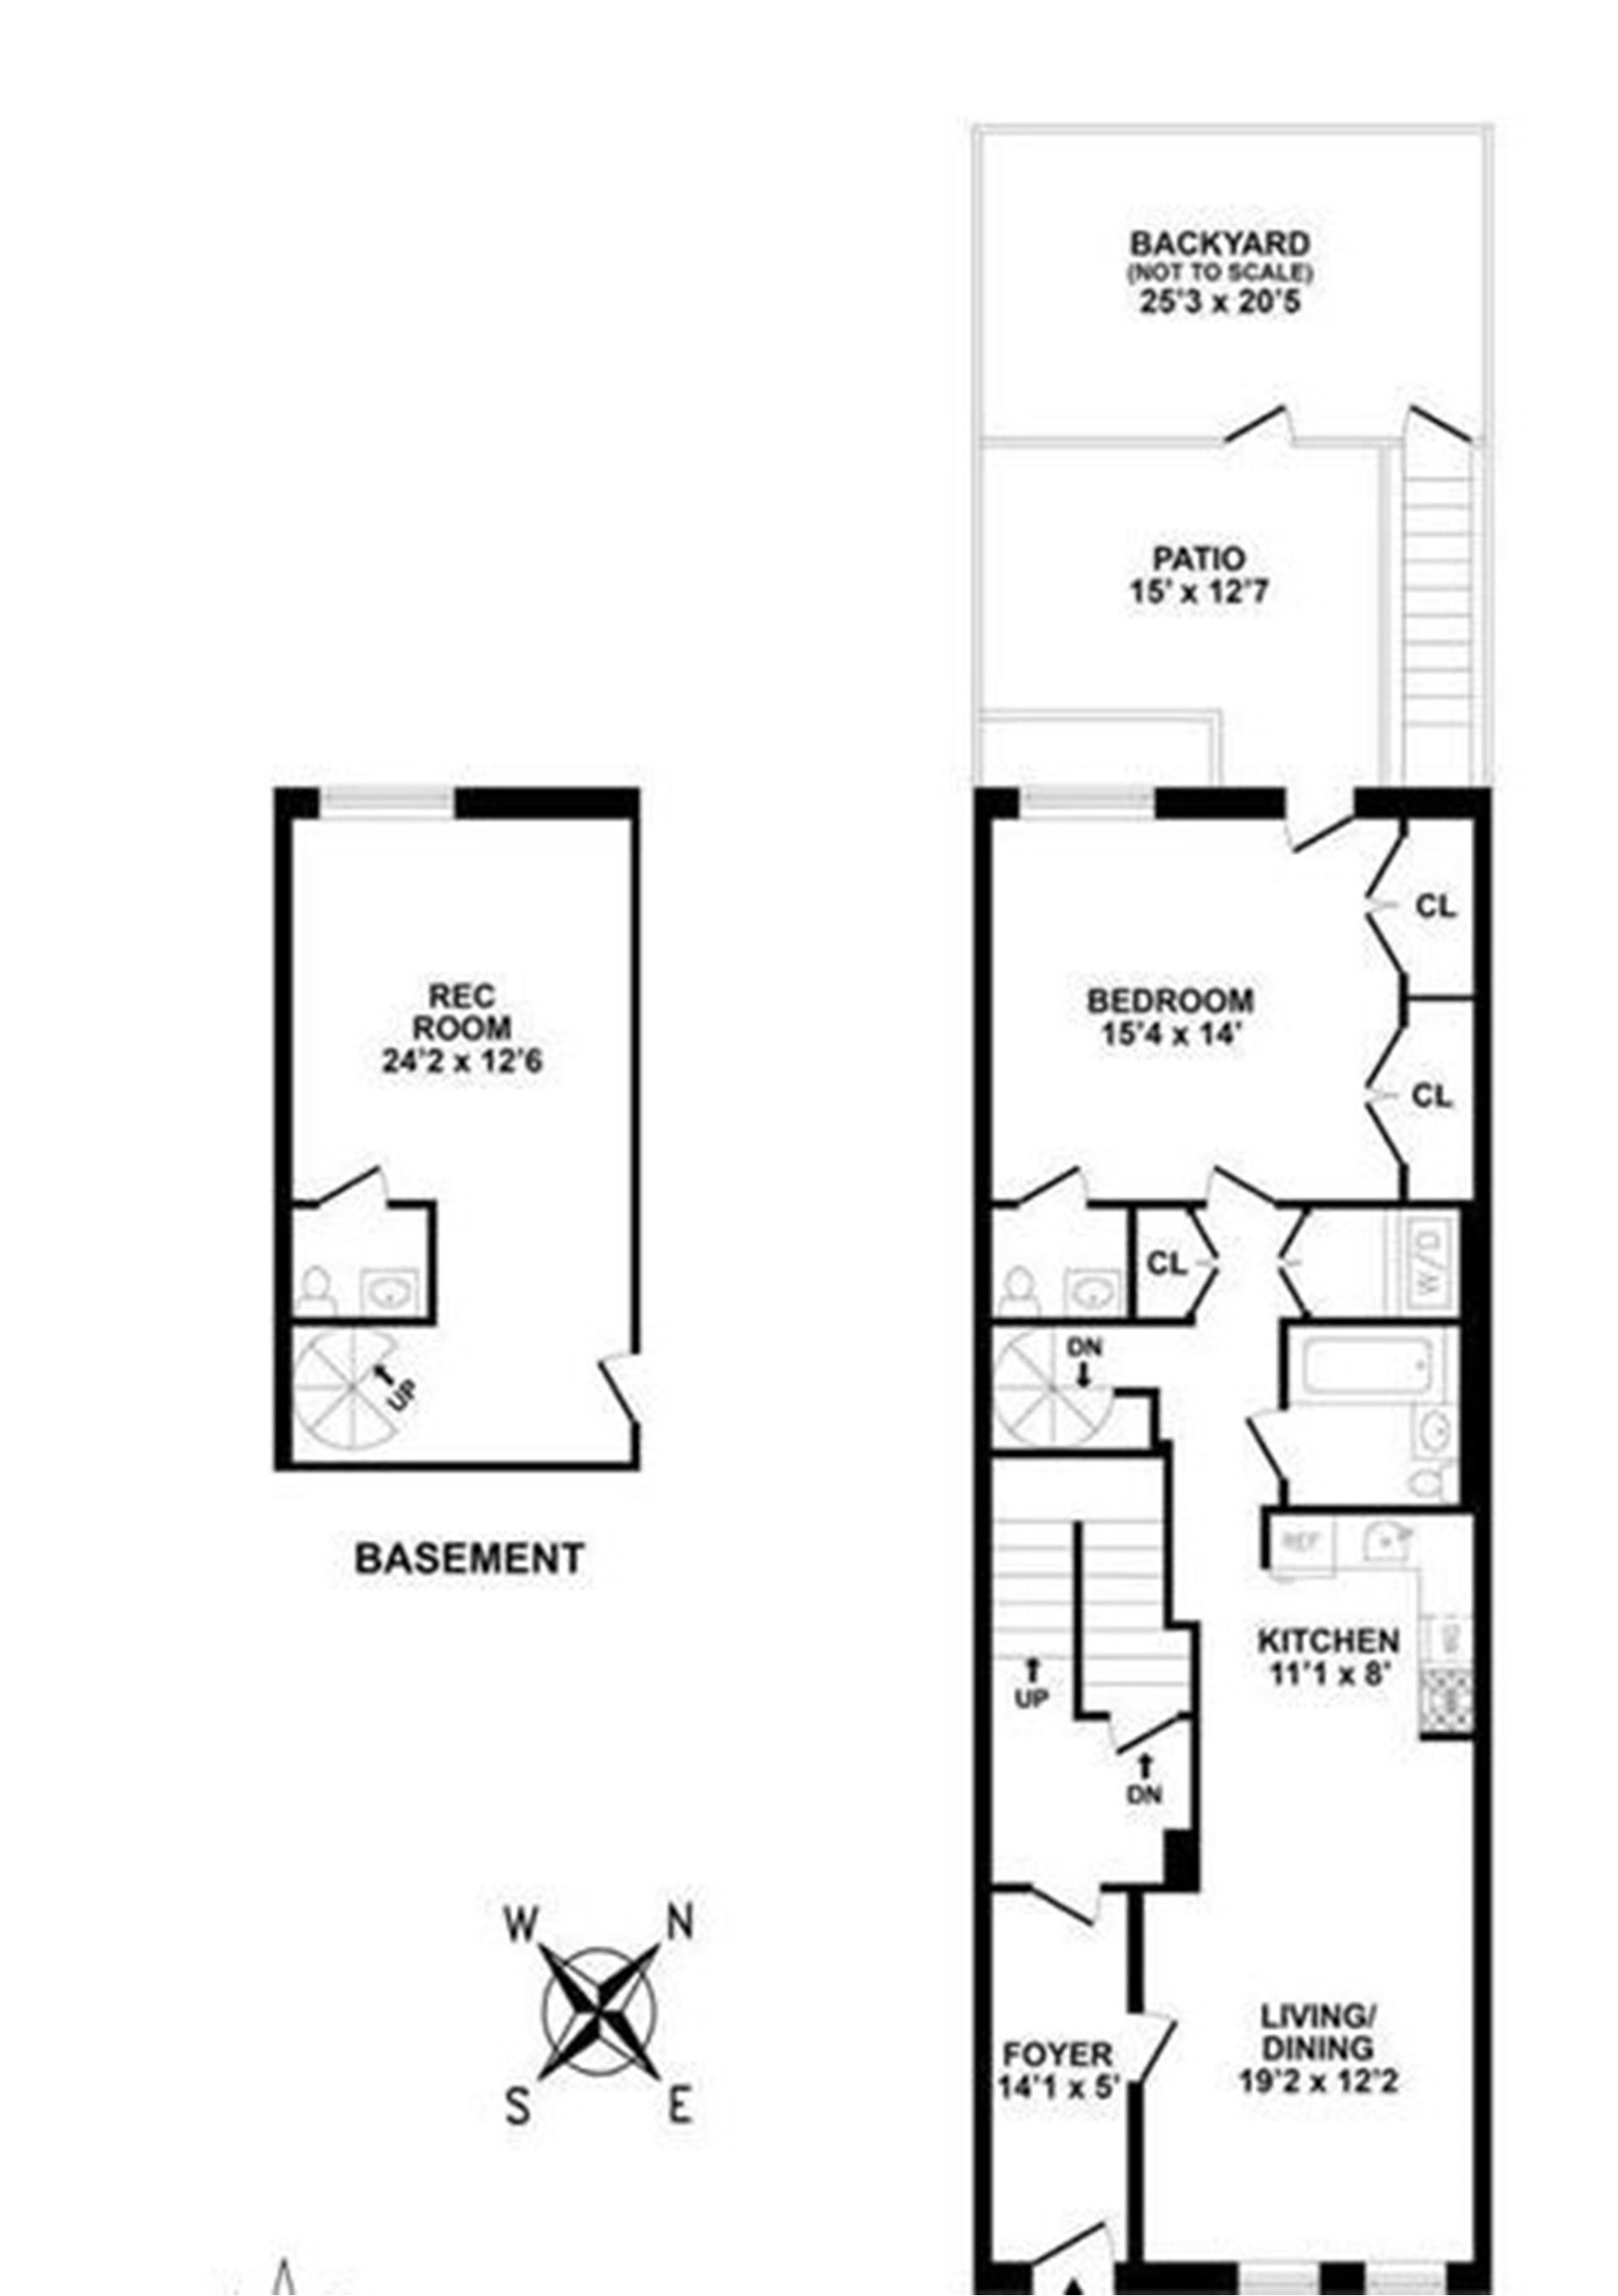 Floor plan of 413 Bergen St, 1 - Park Slope, New York